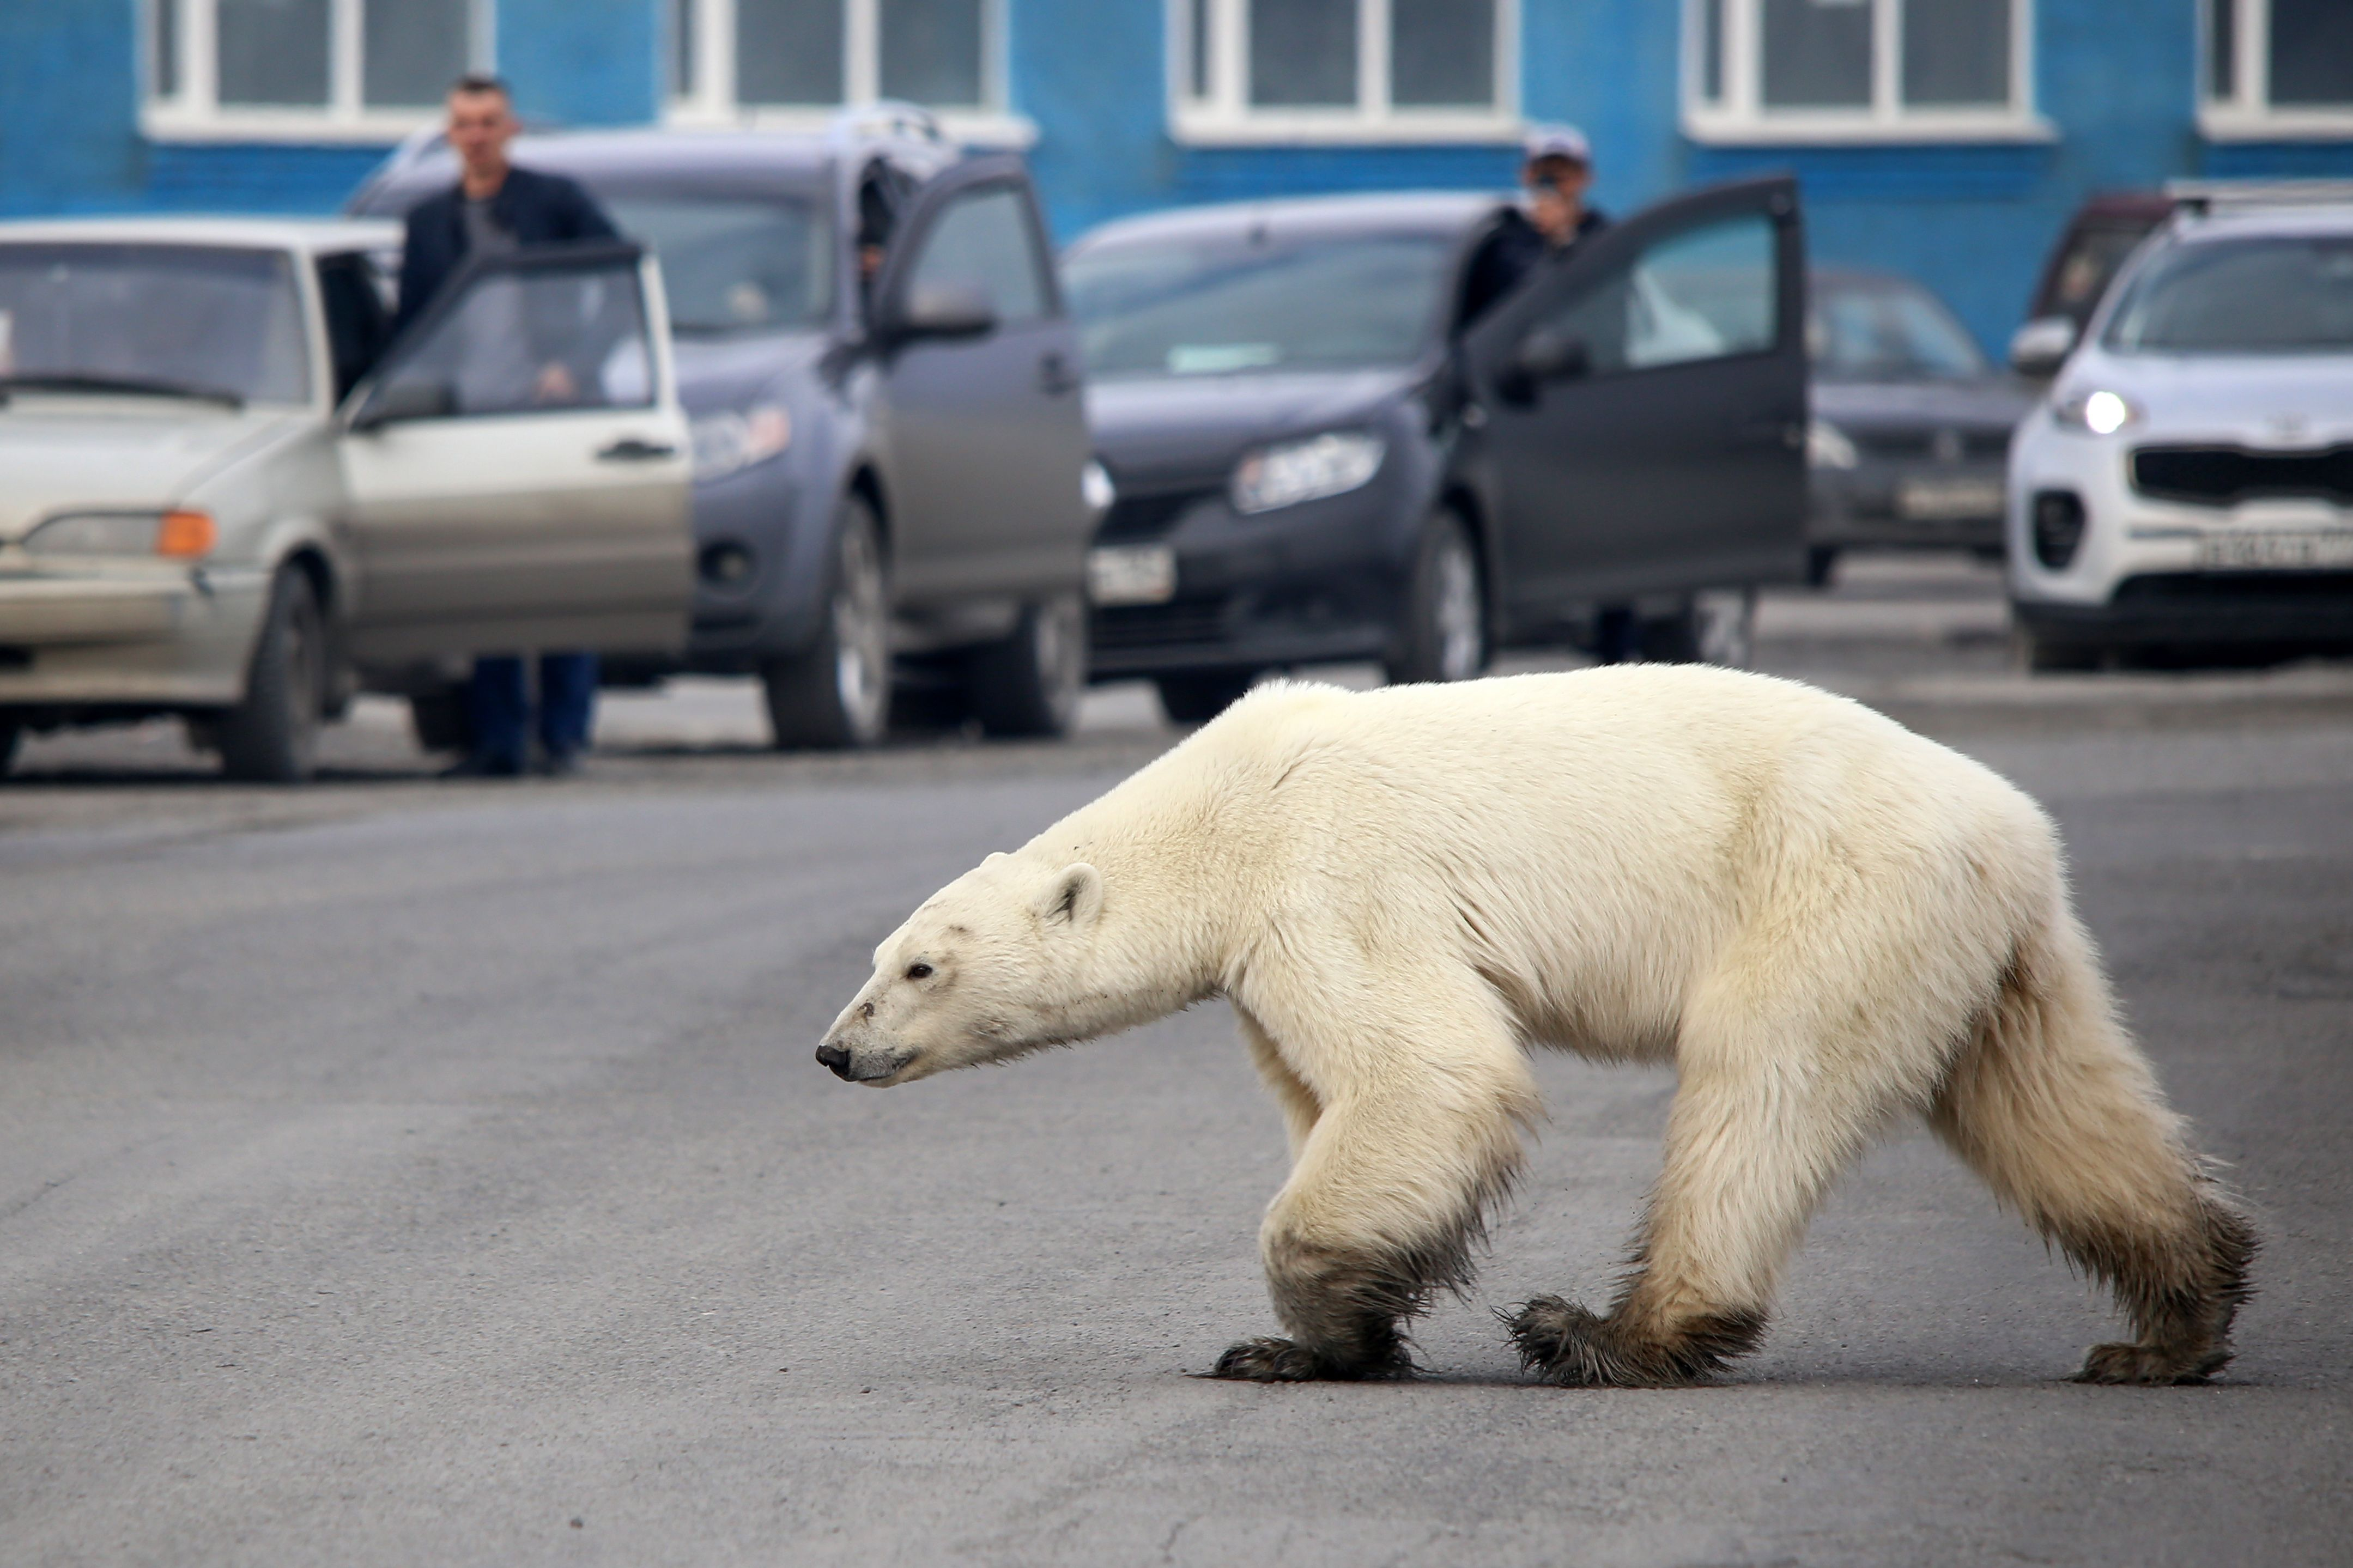 A starving polar bear wandered into a city, scavenging for food hundreds of miles from home